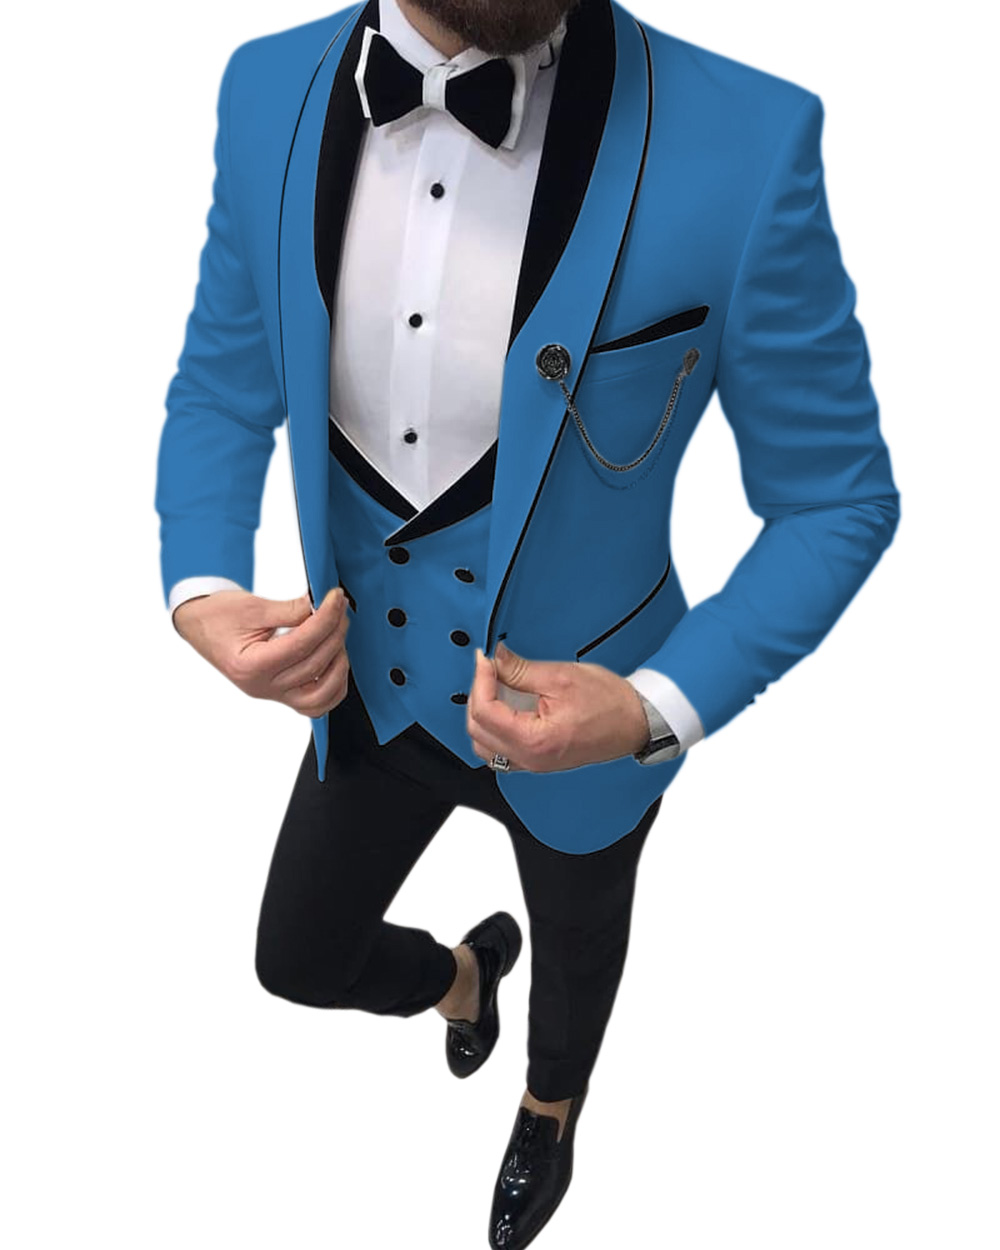 Men-s-Suits-Slim-Fit-3-Piece-Prom-Tuxedos-Shawl-Lapel-Double-Breasted-Vest-Tuxedos-Blazer (1)